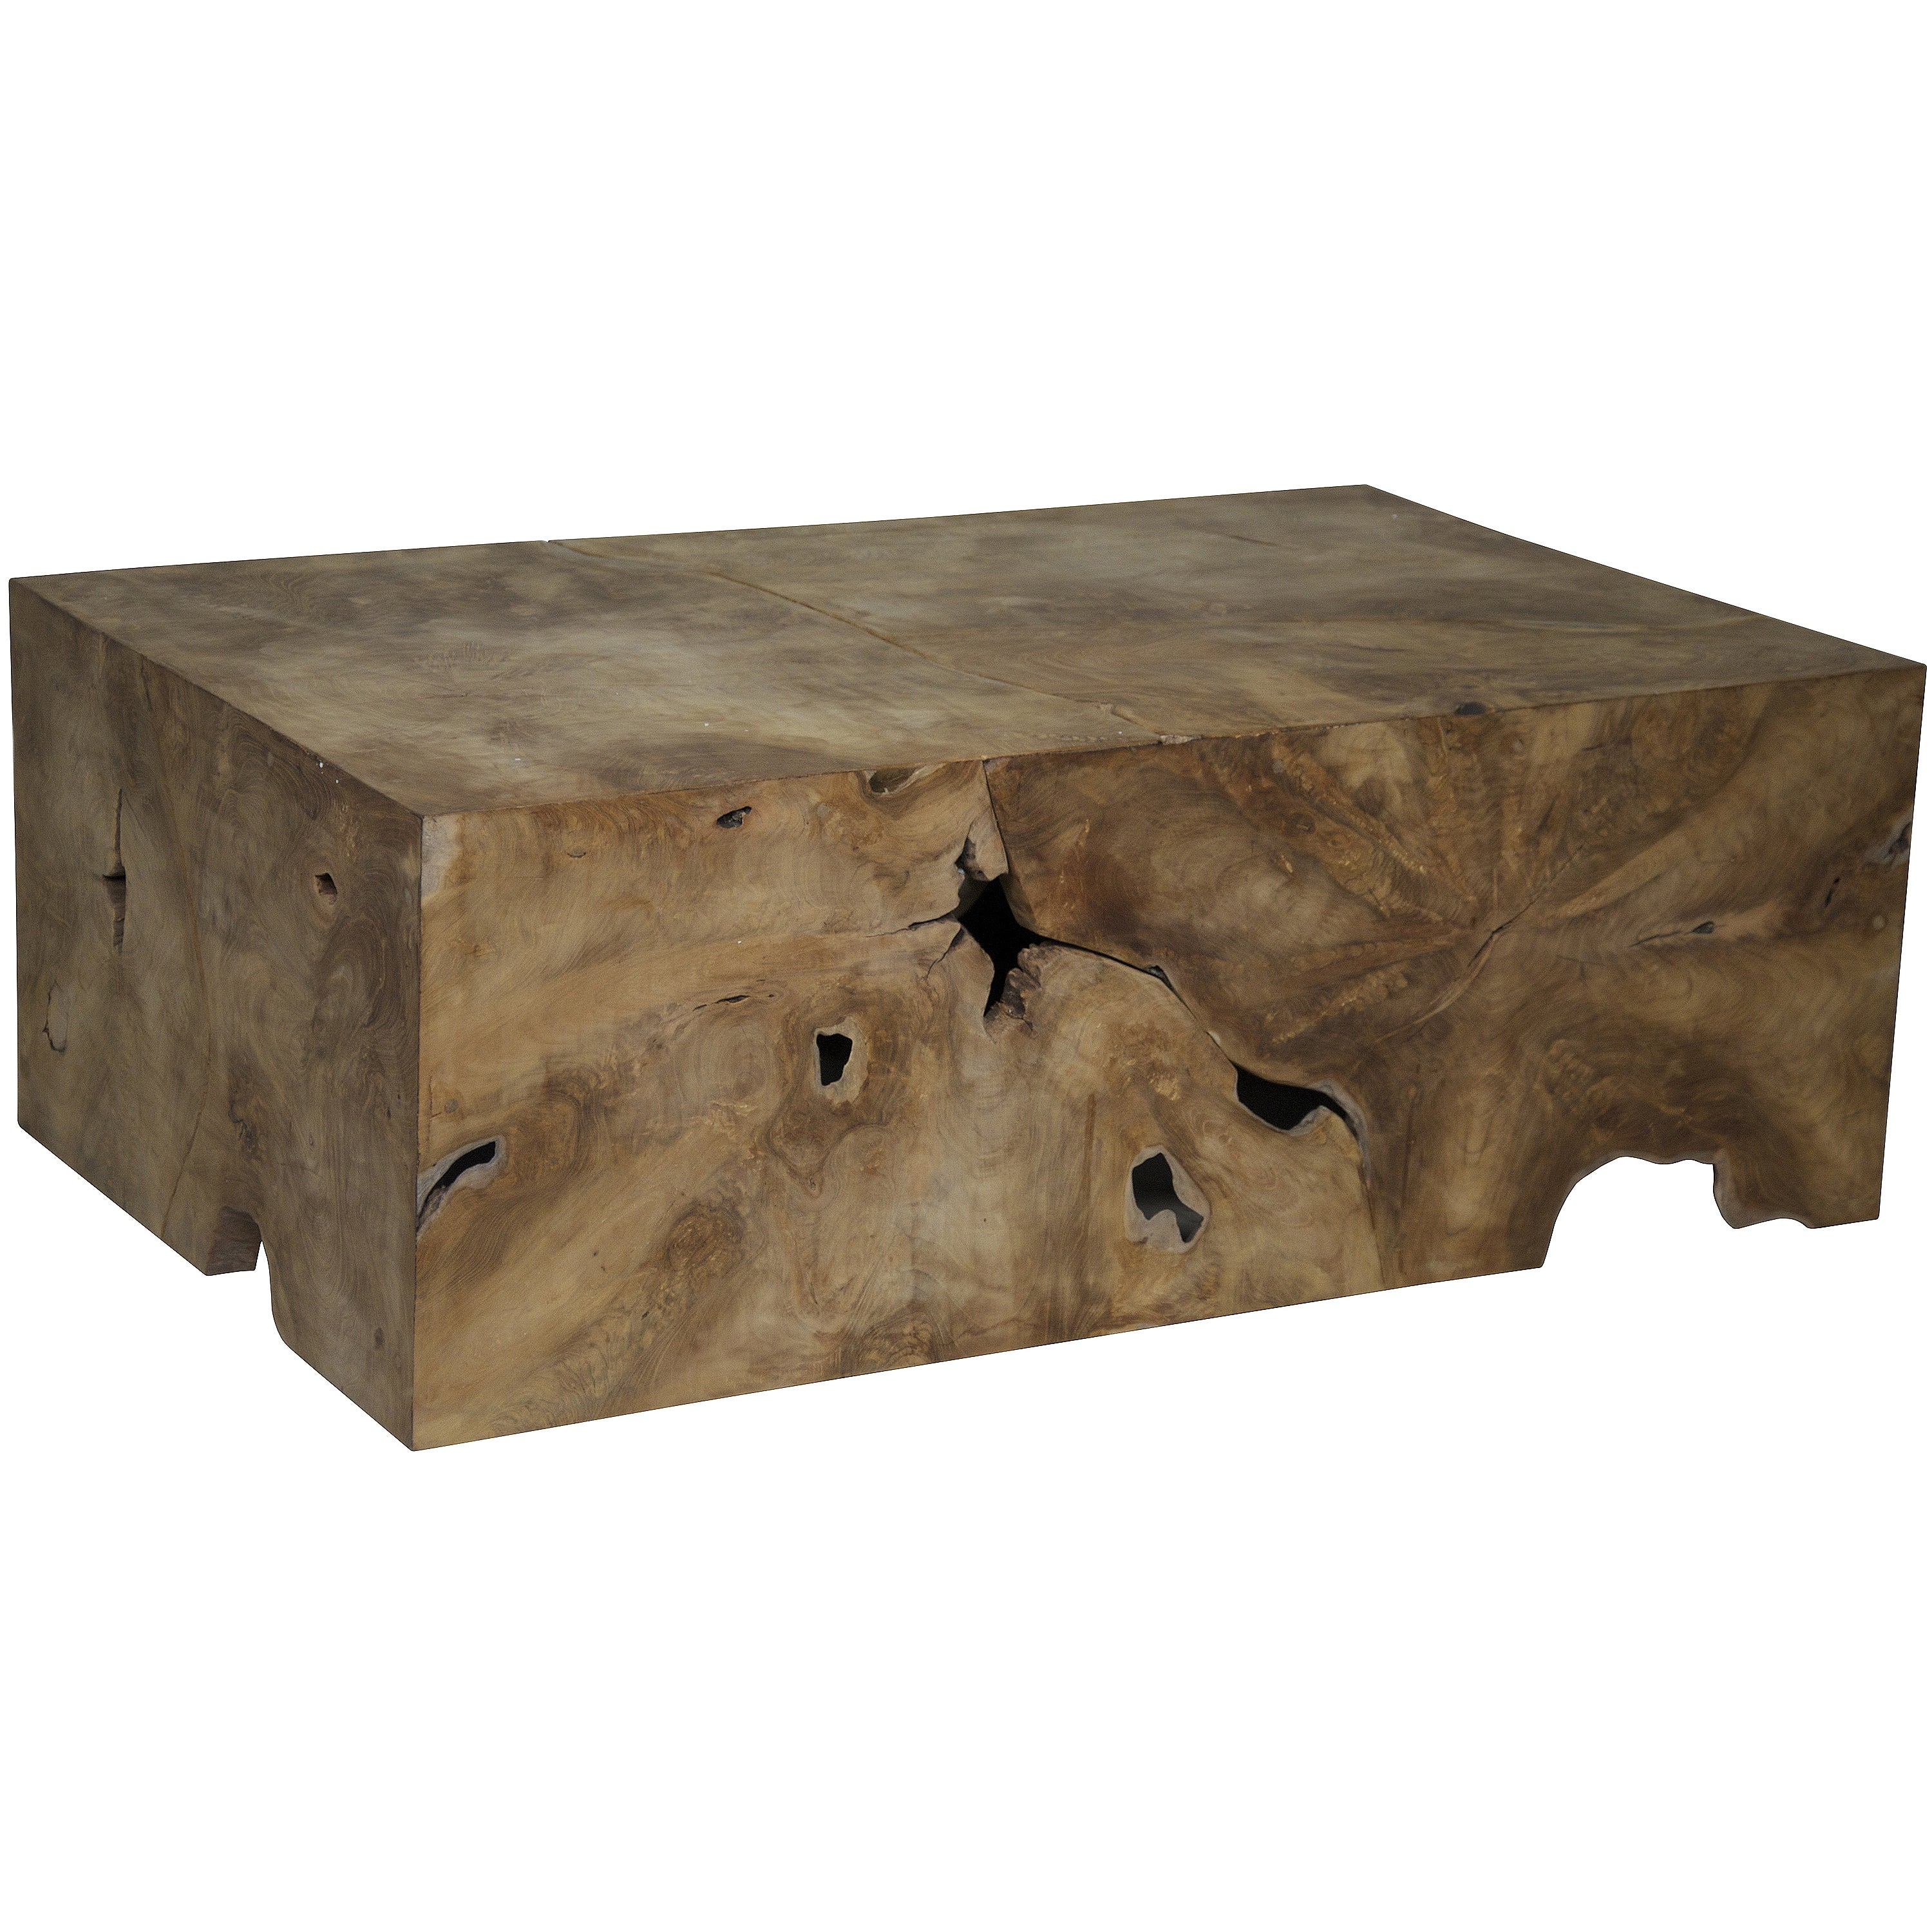 Muse Root Teak Wood Coffee Table (Teak), Beige